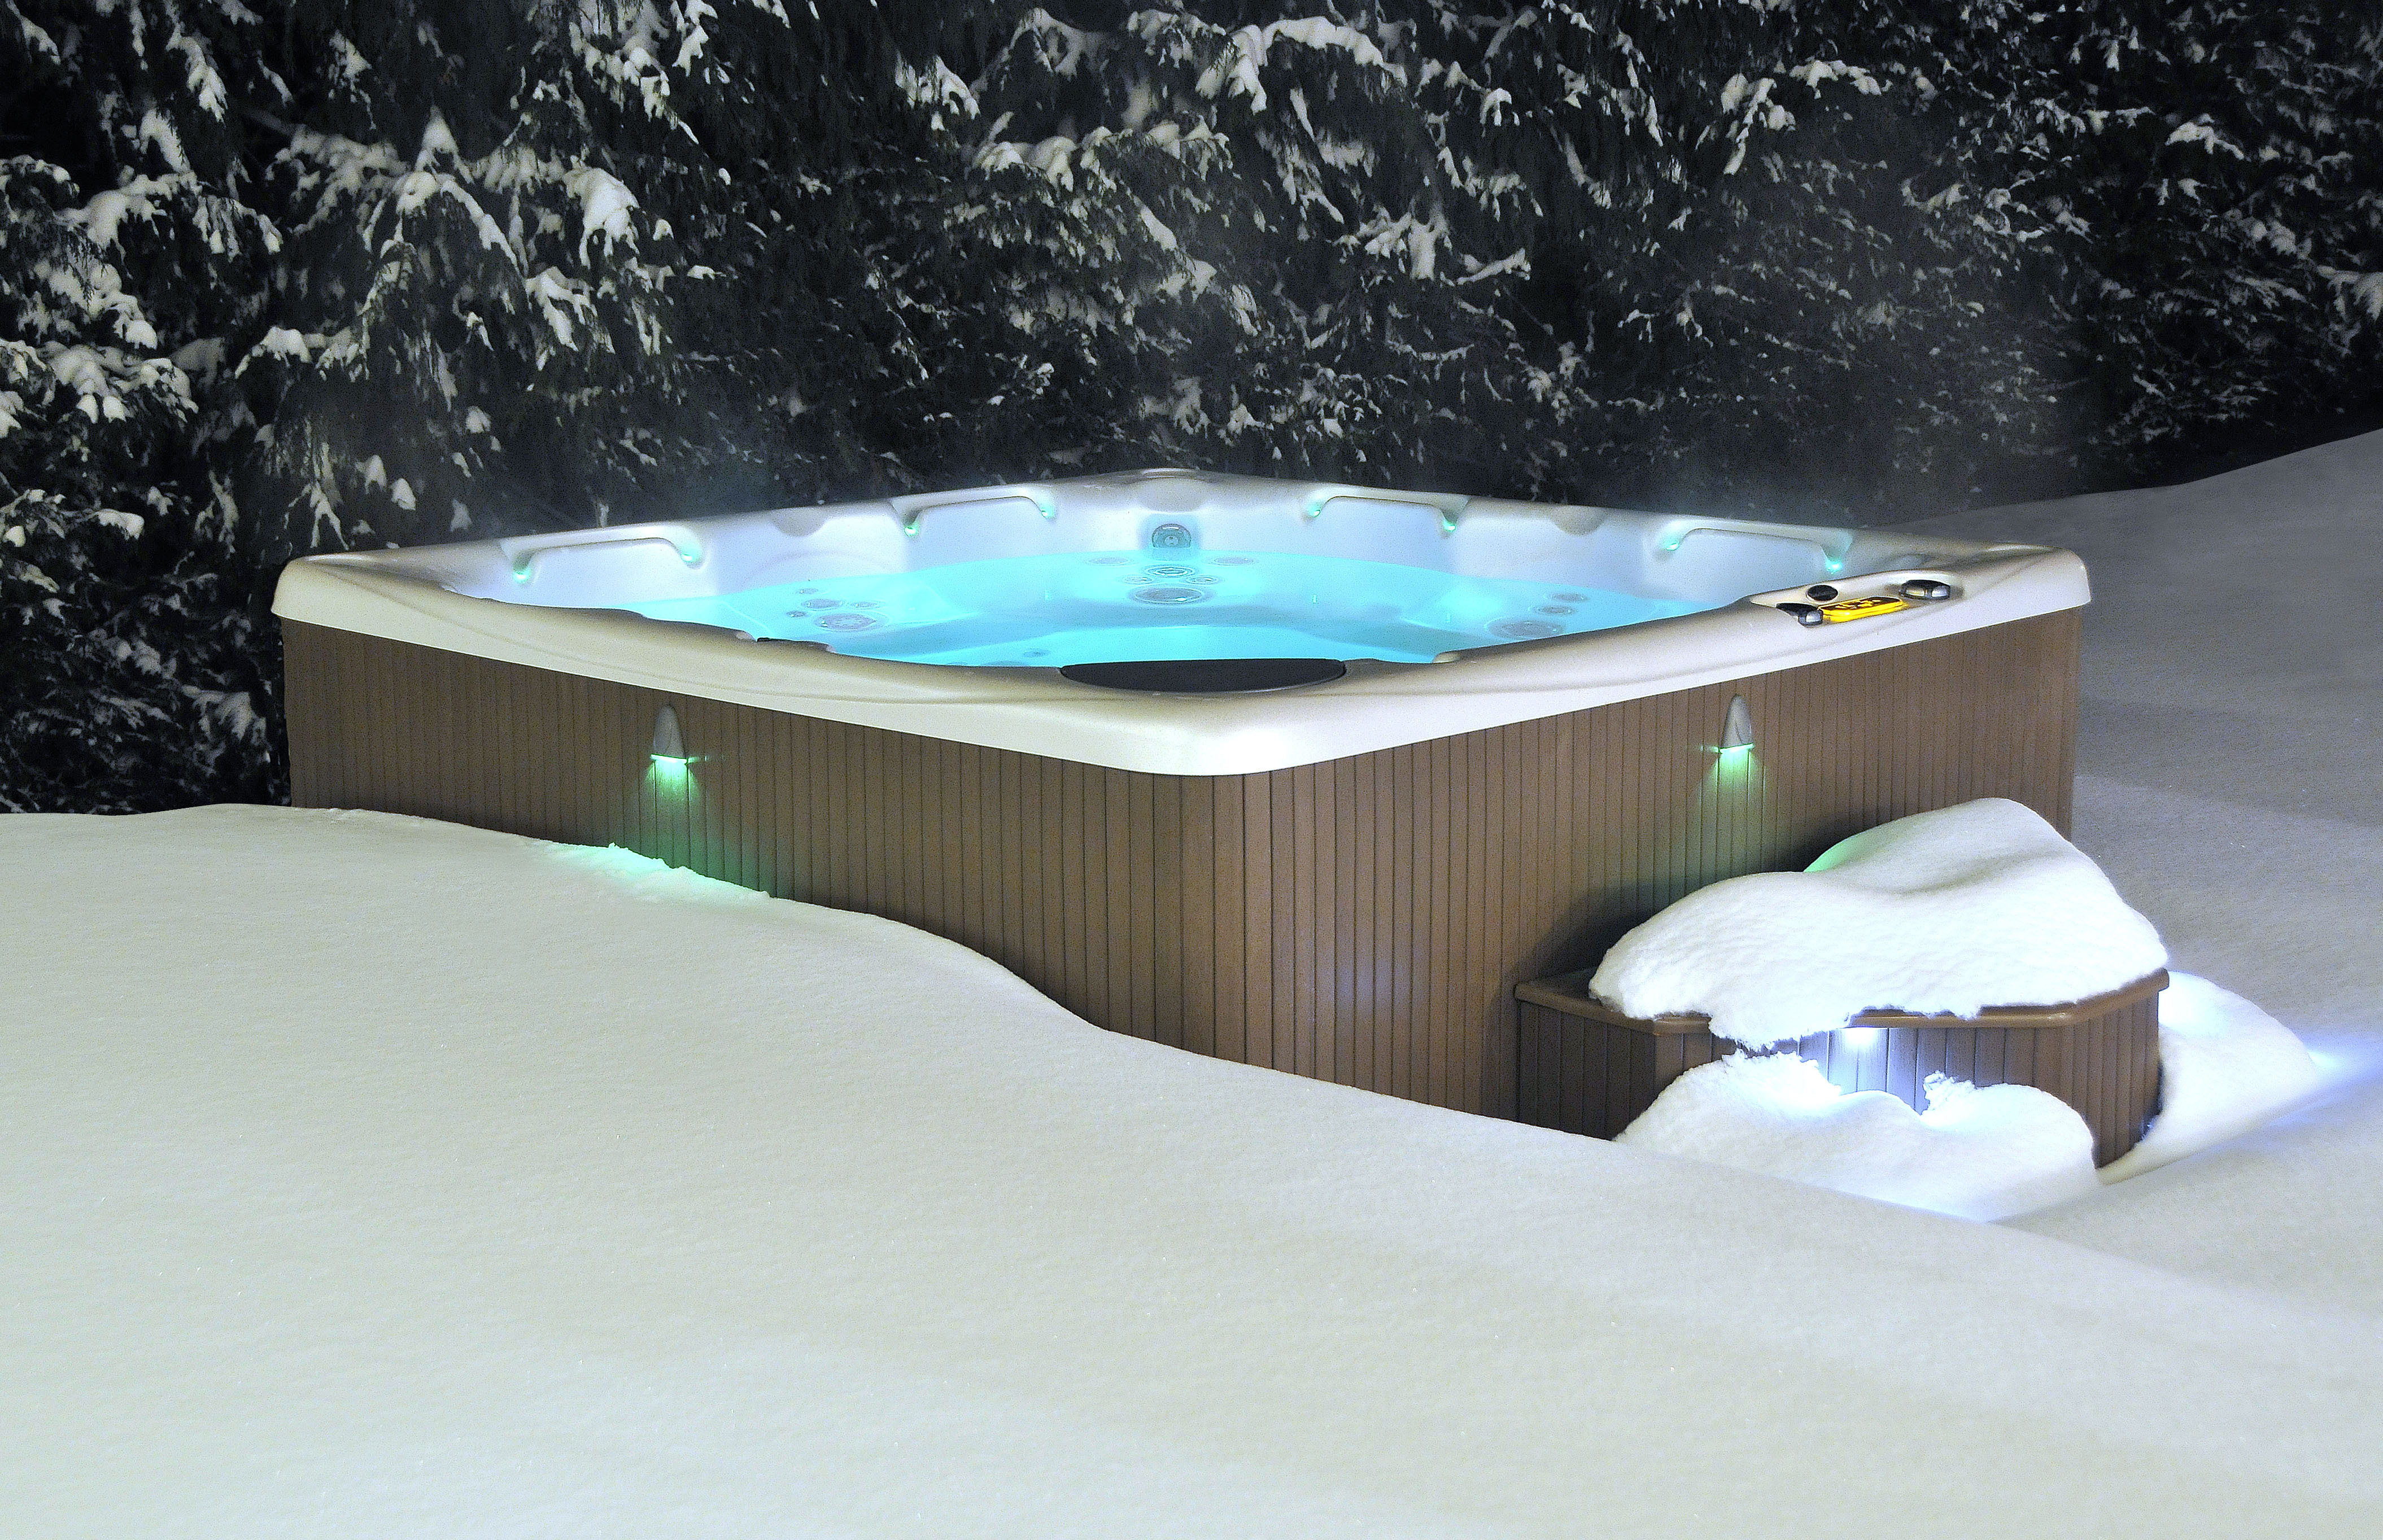 Cold weather heaven swimming pool solutions for Installing pool liner in cold weather